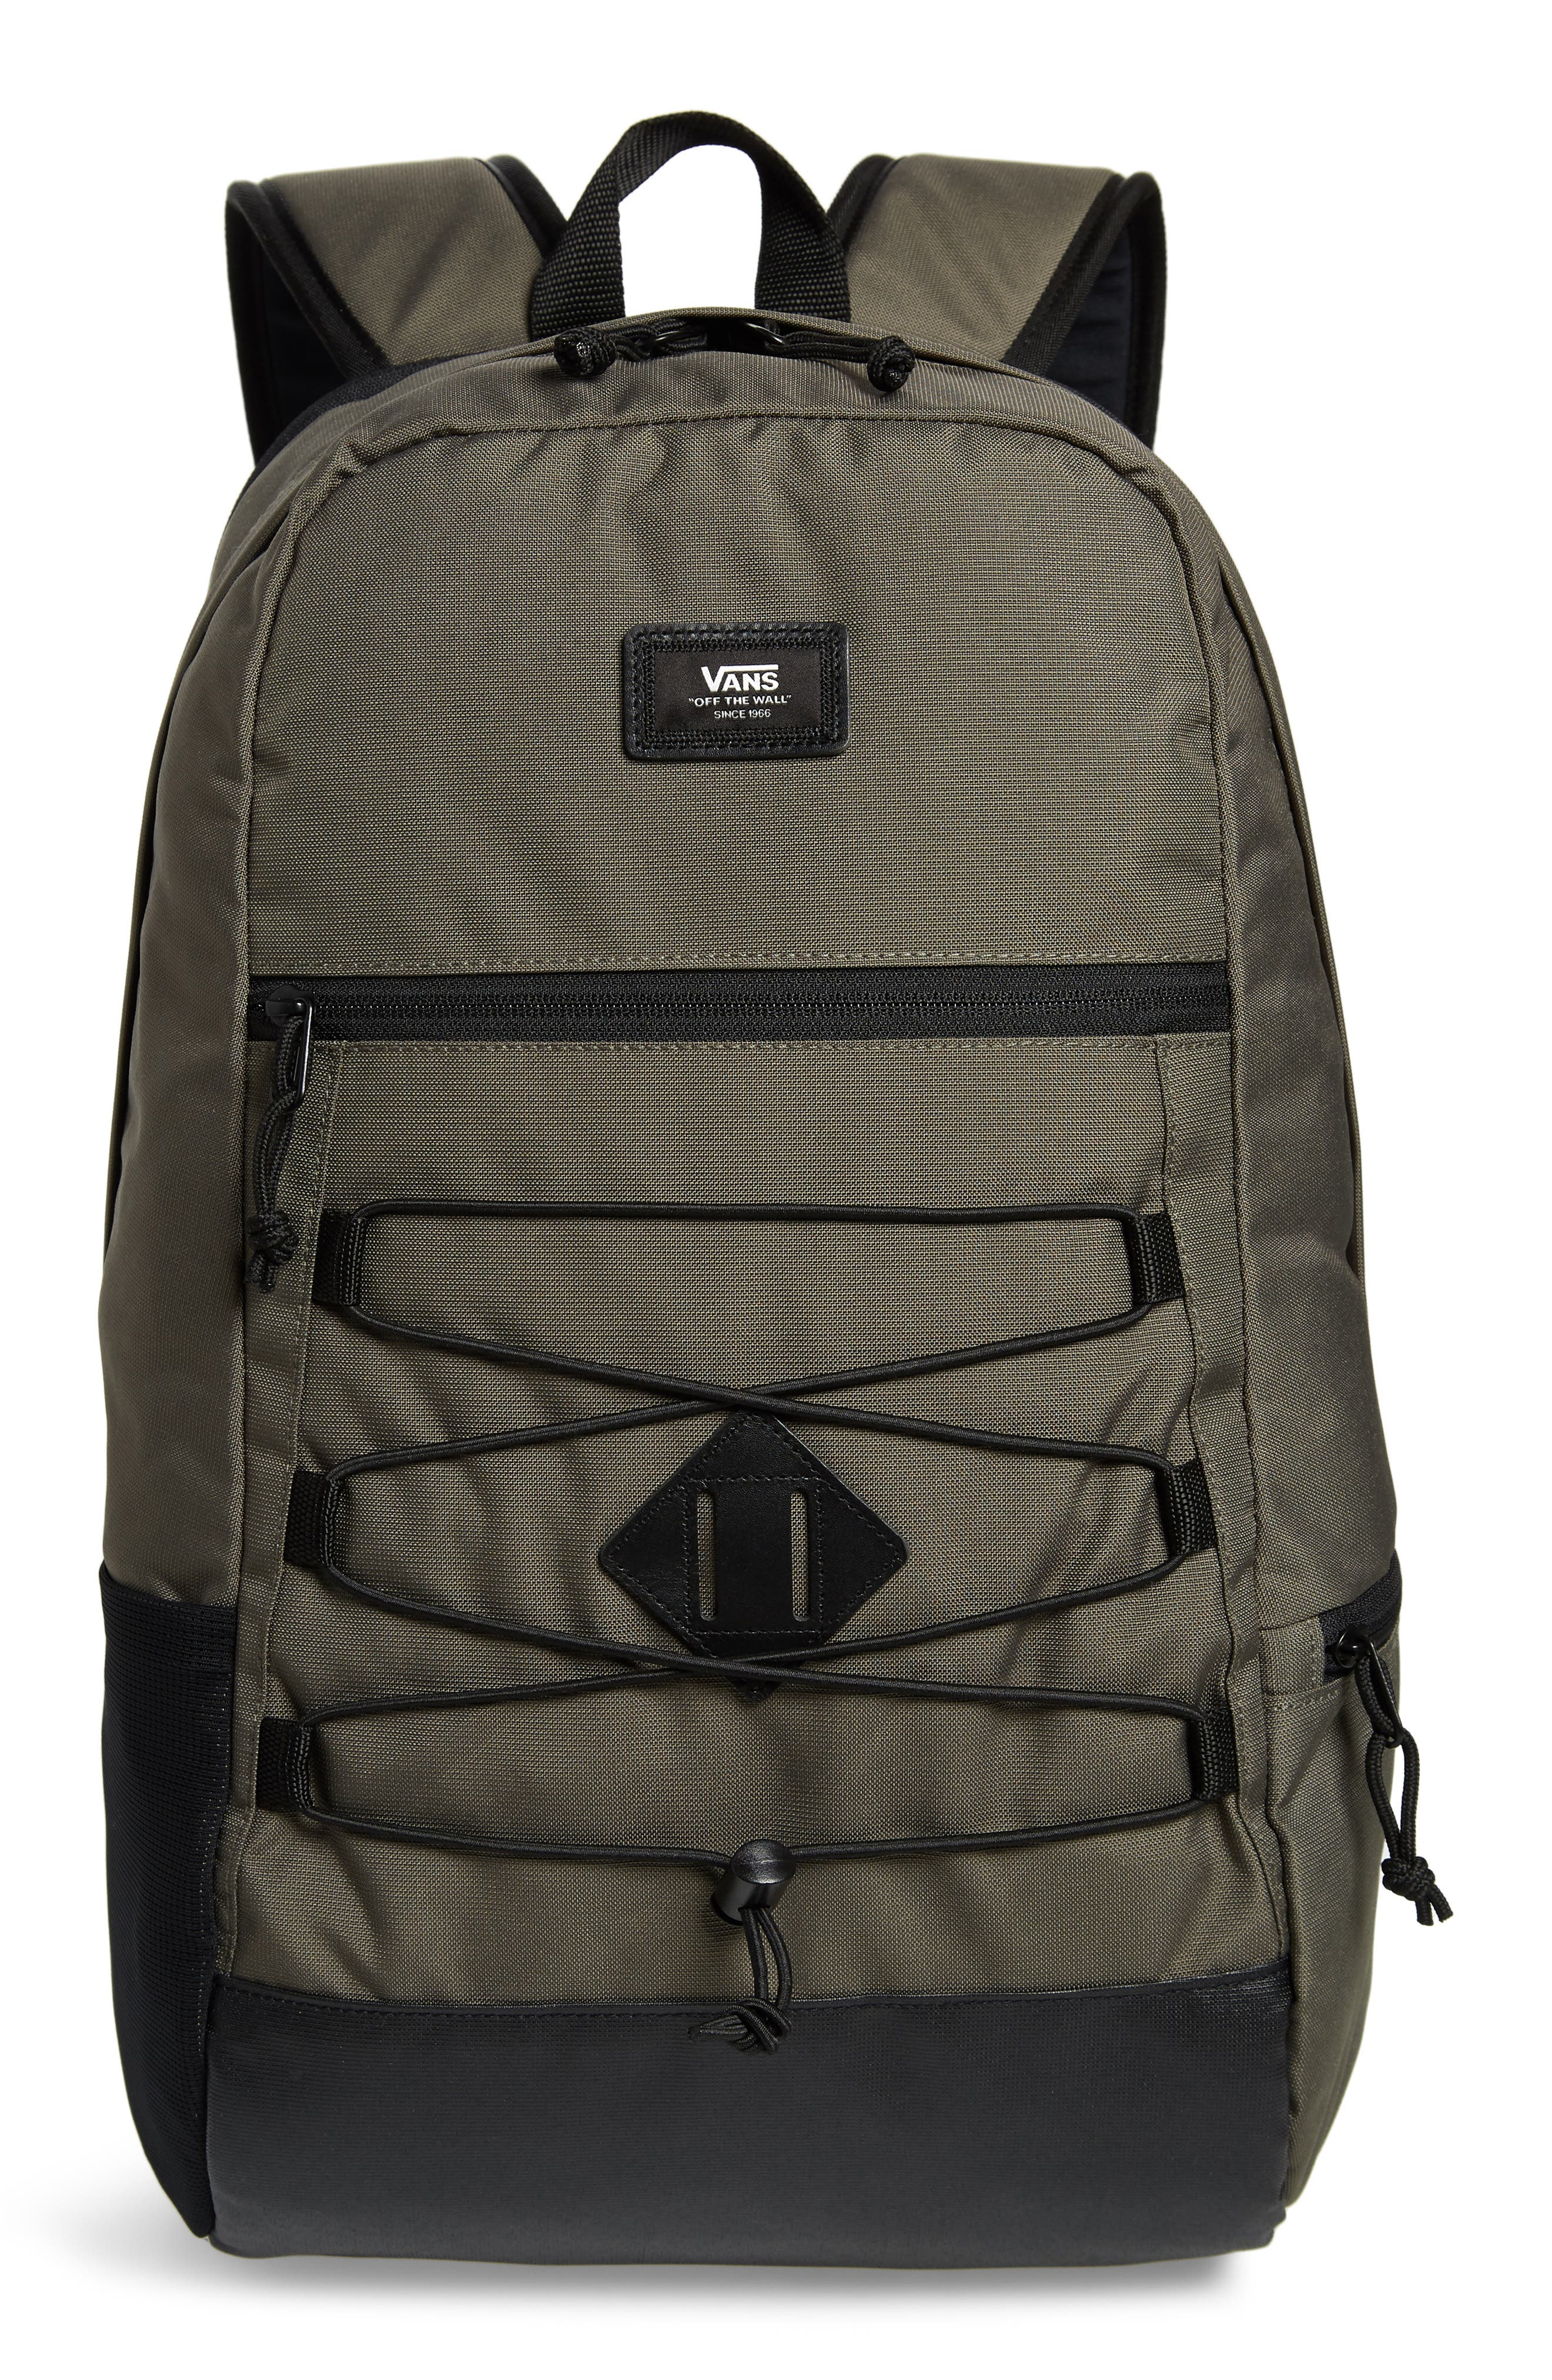 Vans Snag Plus Backpack - Green